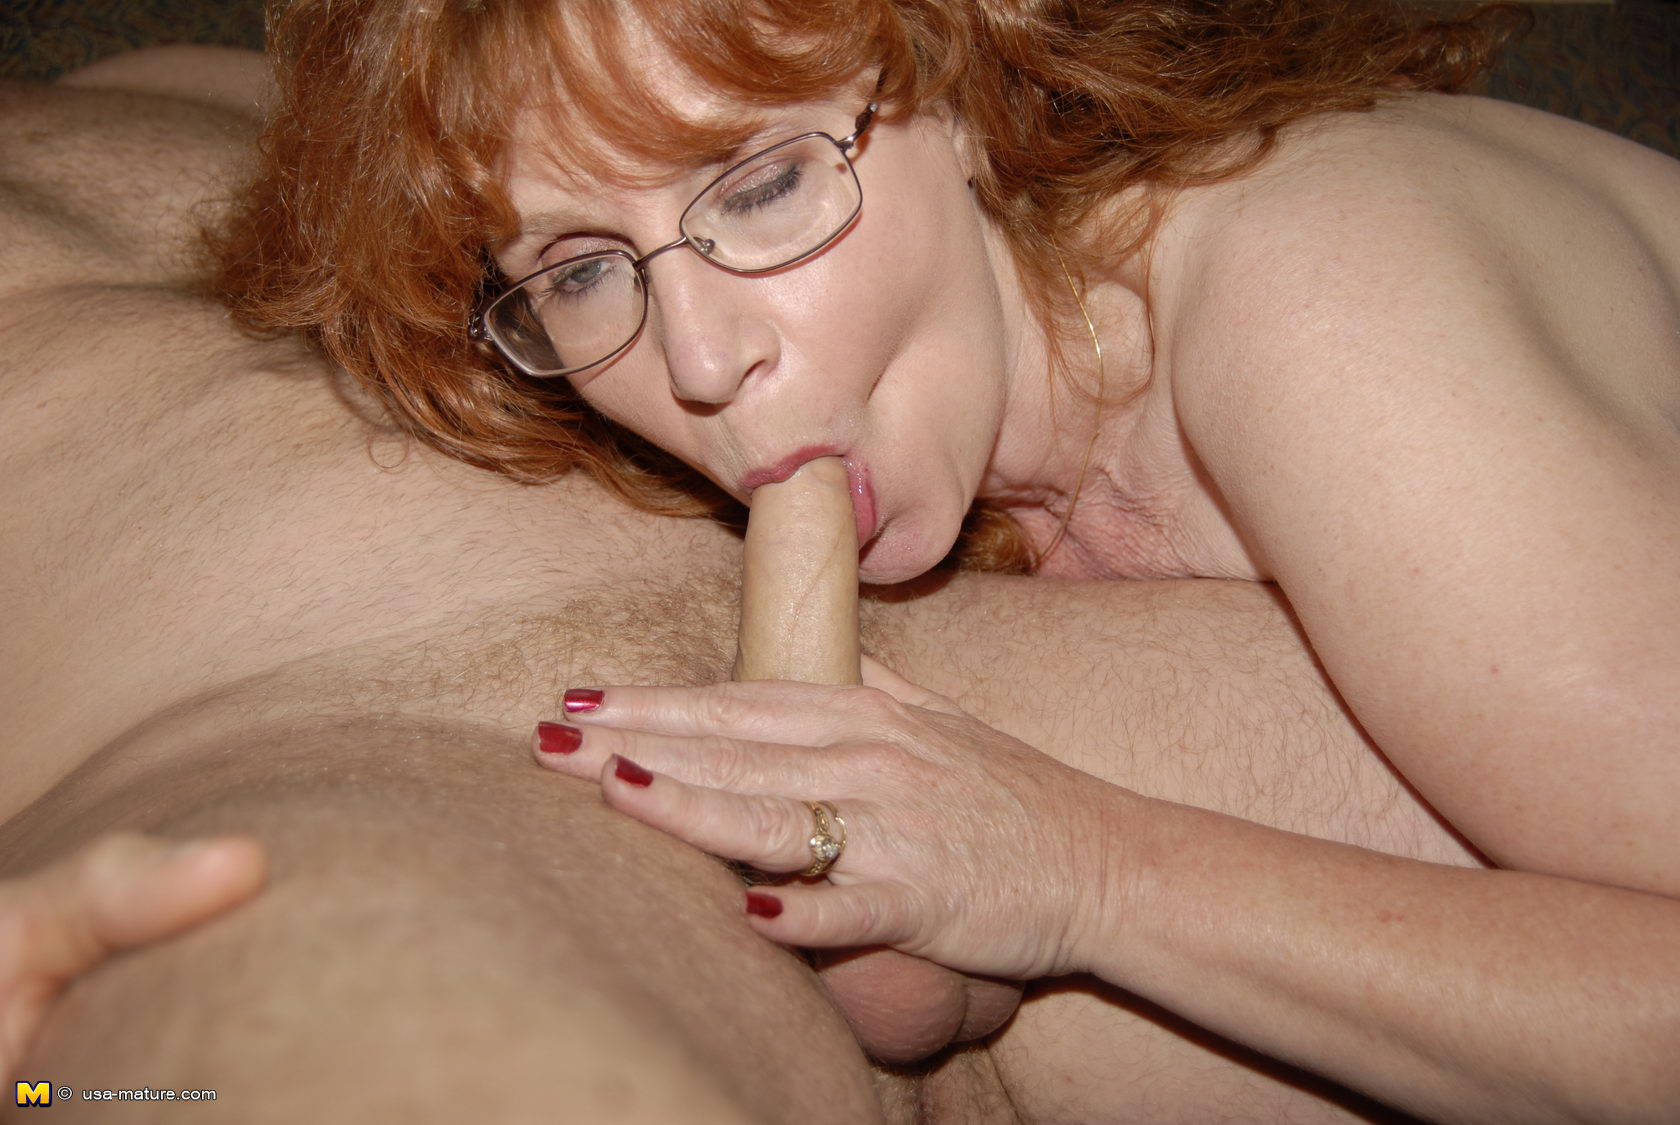 Mature milf amateurs